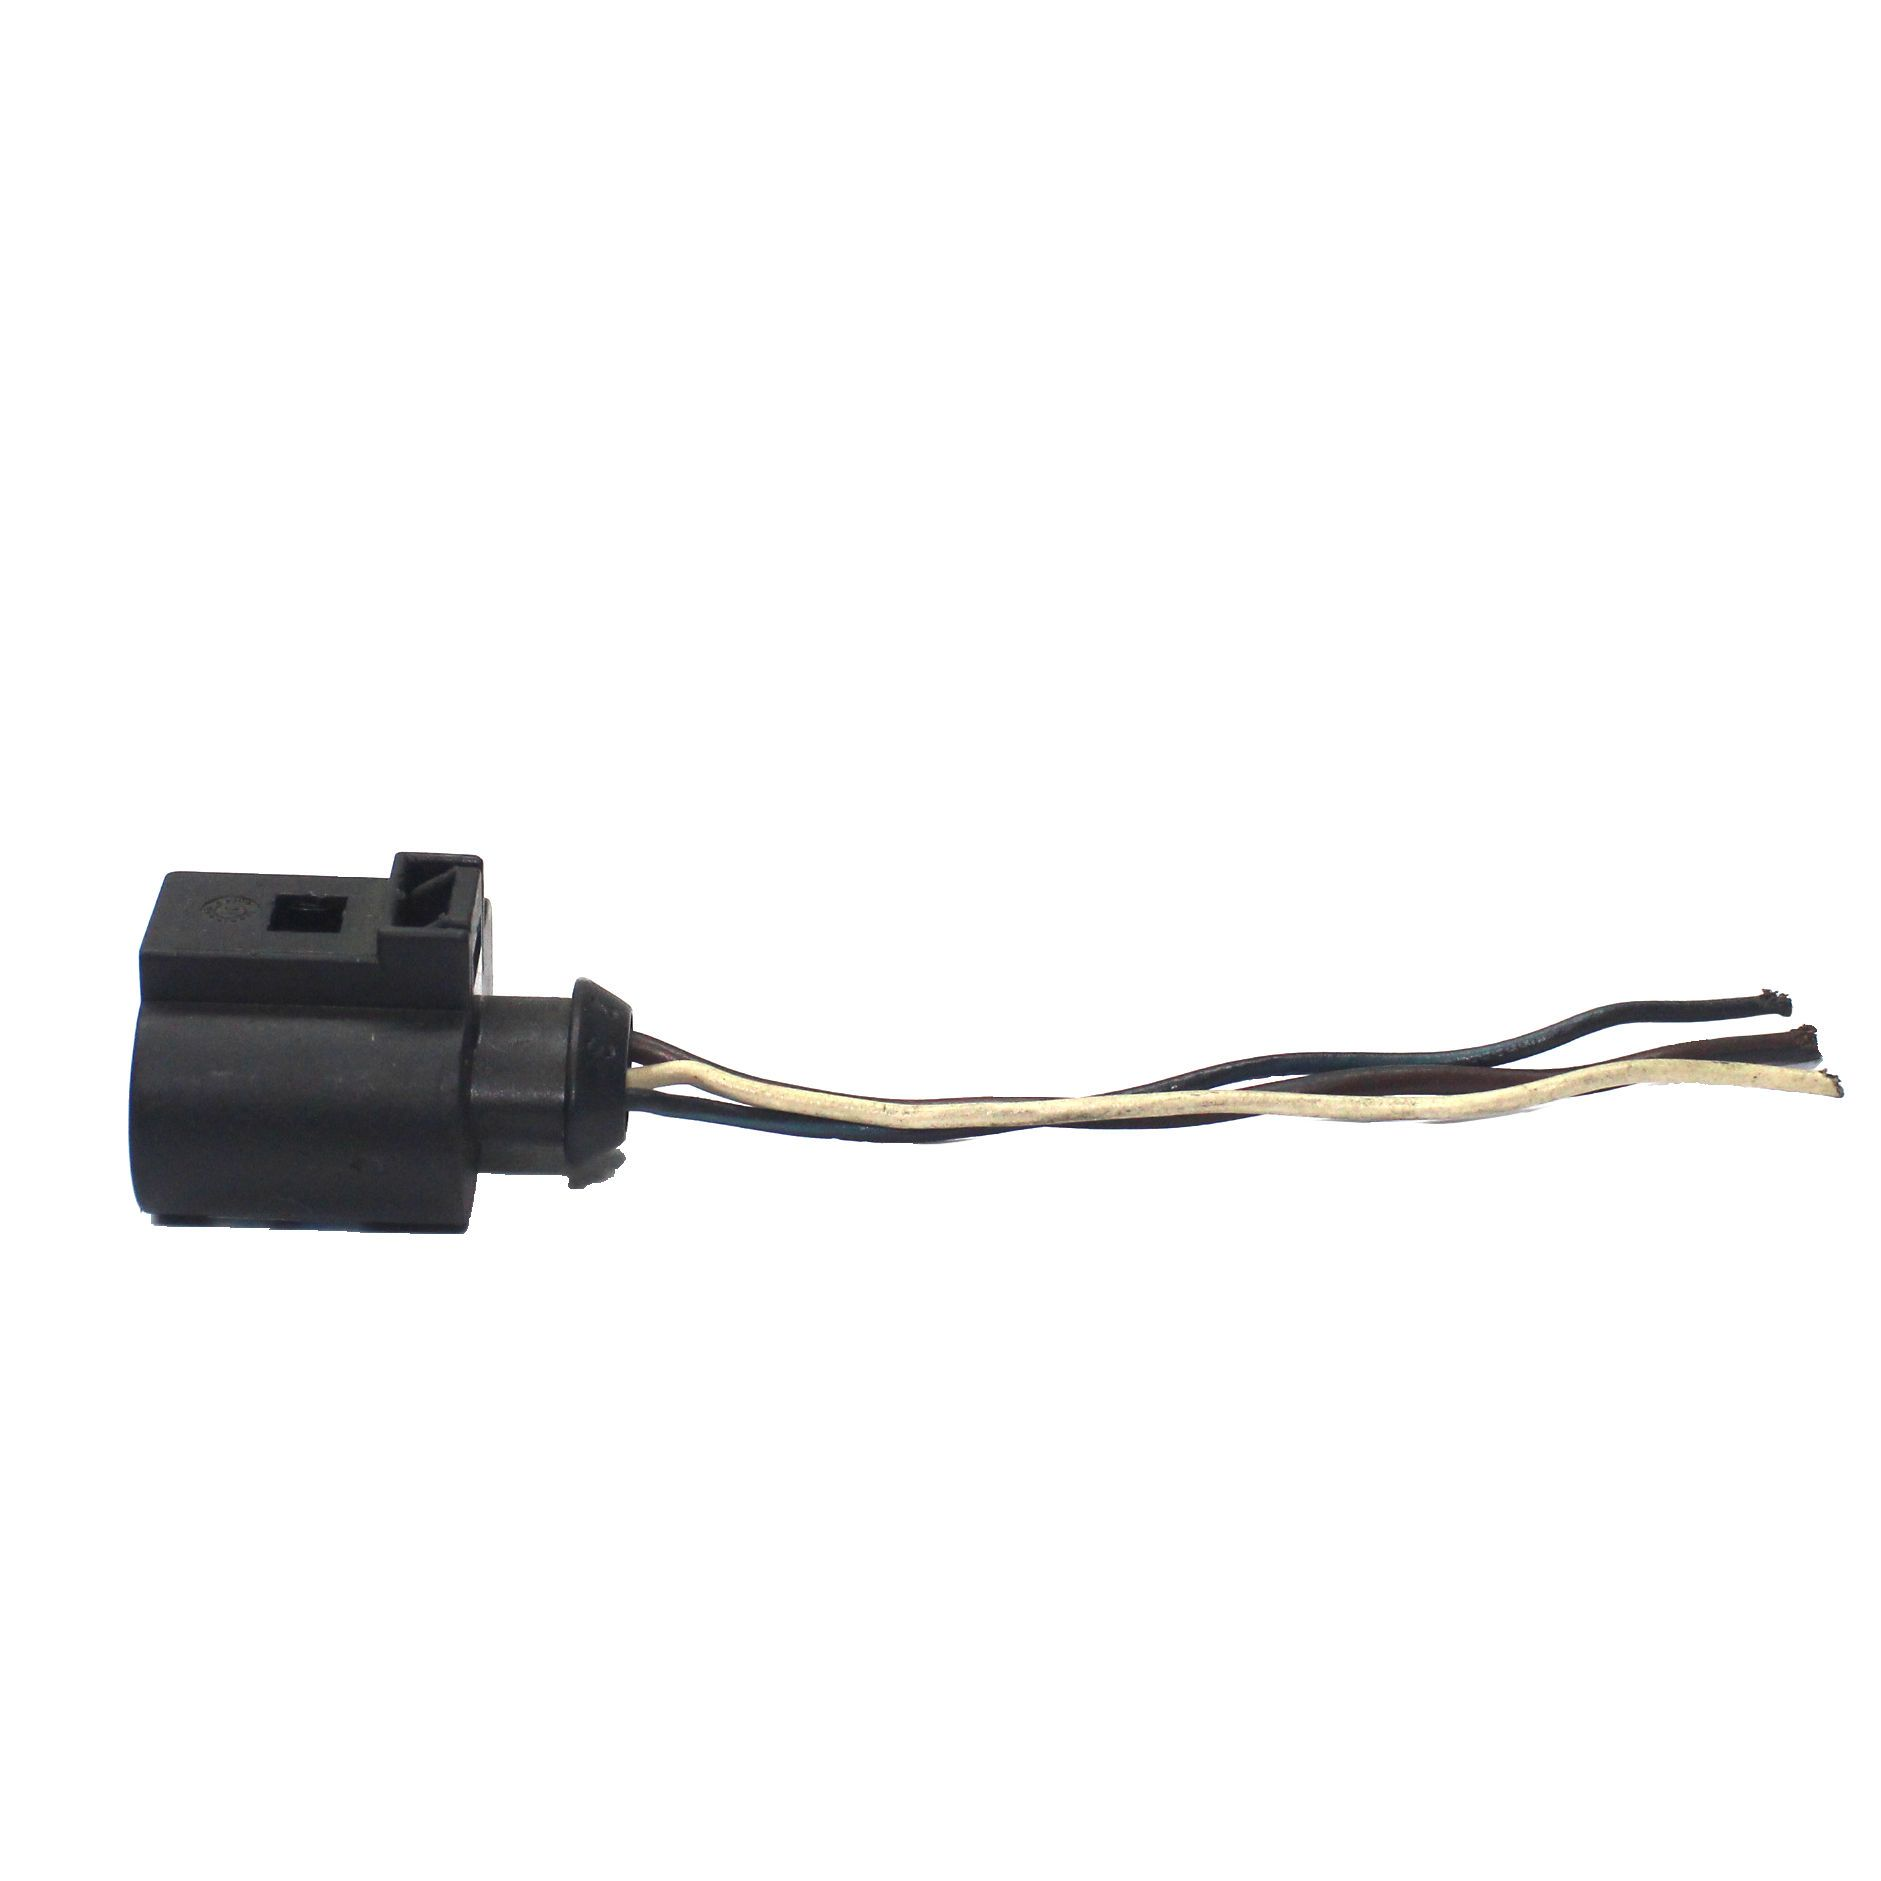 Plug Pressostato Ar Condicionado Golf, Polo, New Beatle, Gol G5, A3